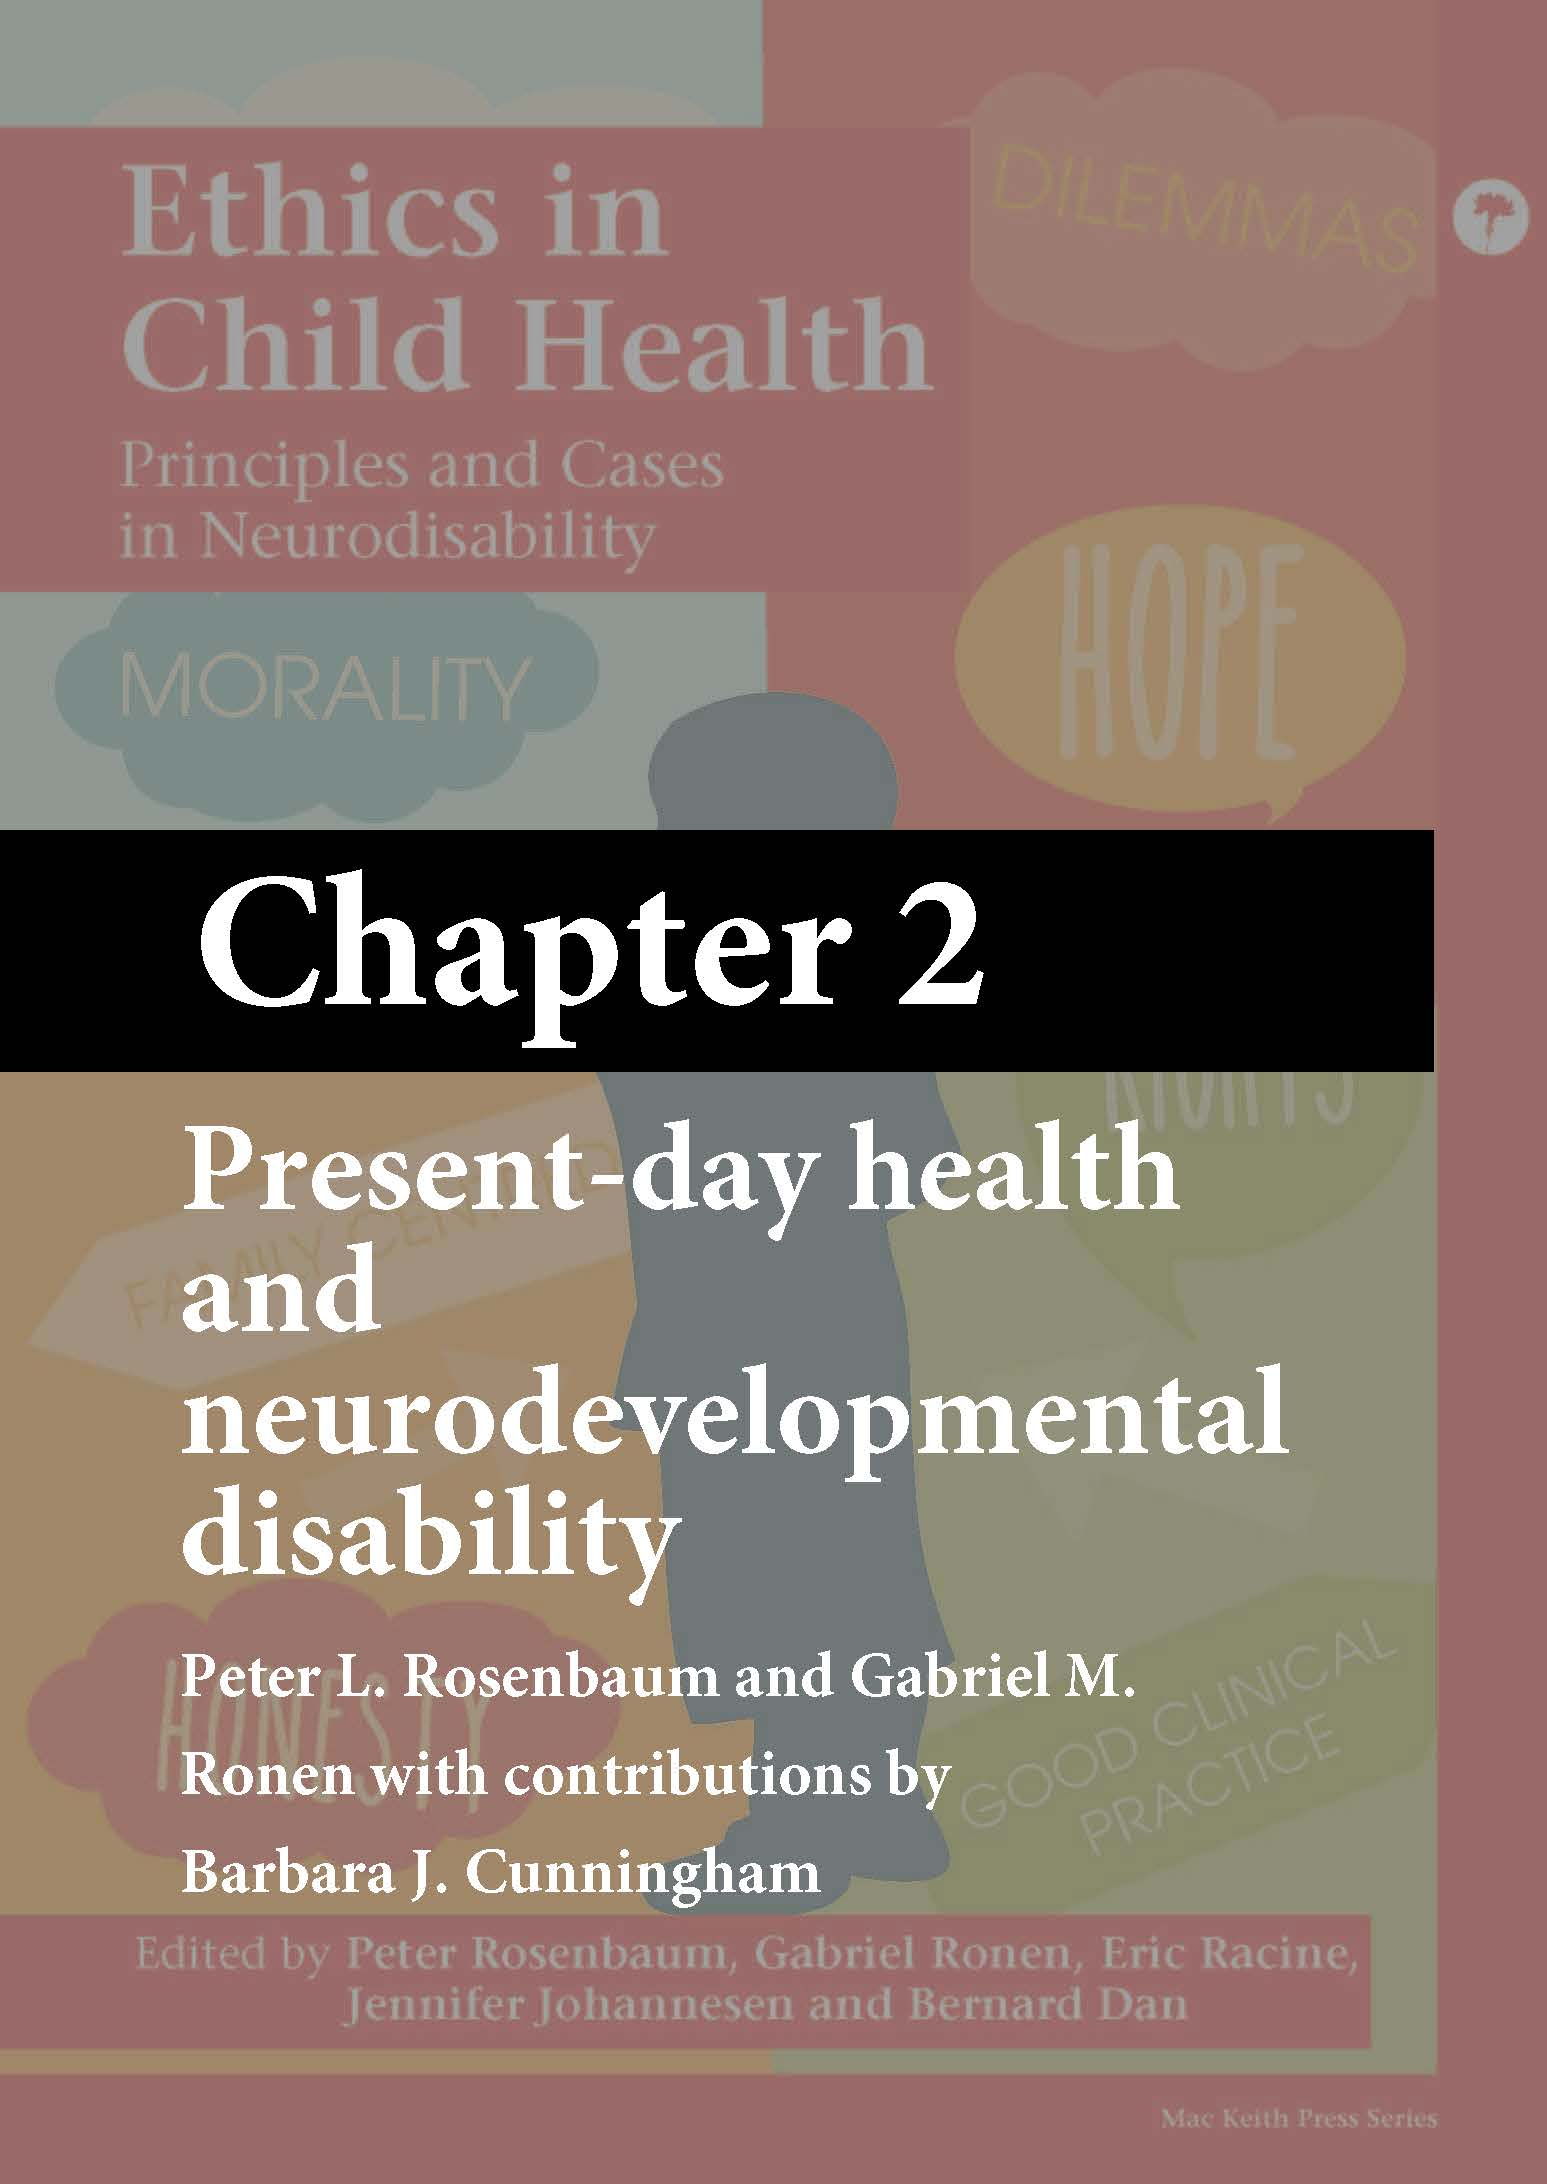 Ethics in Child Health - (Chapter 2) - Present-day health and neurodevelopmental disability (ebook)